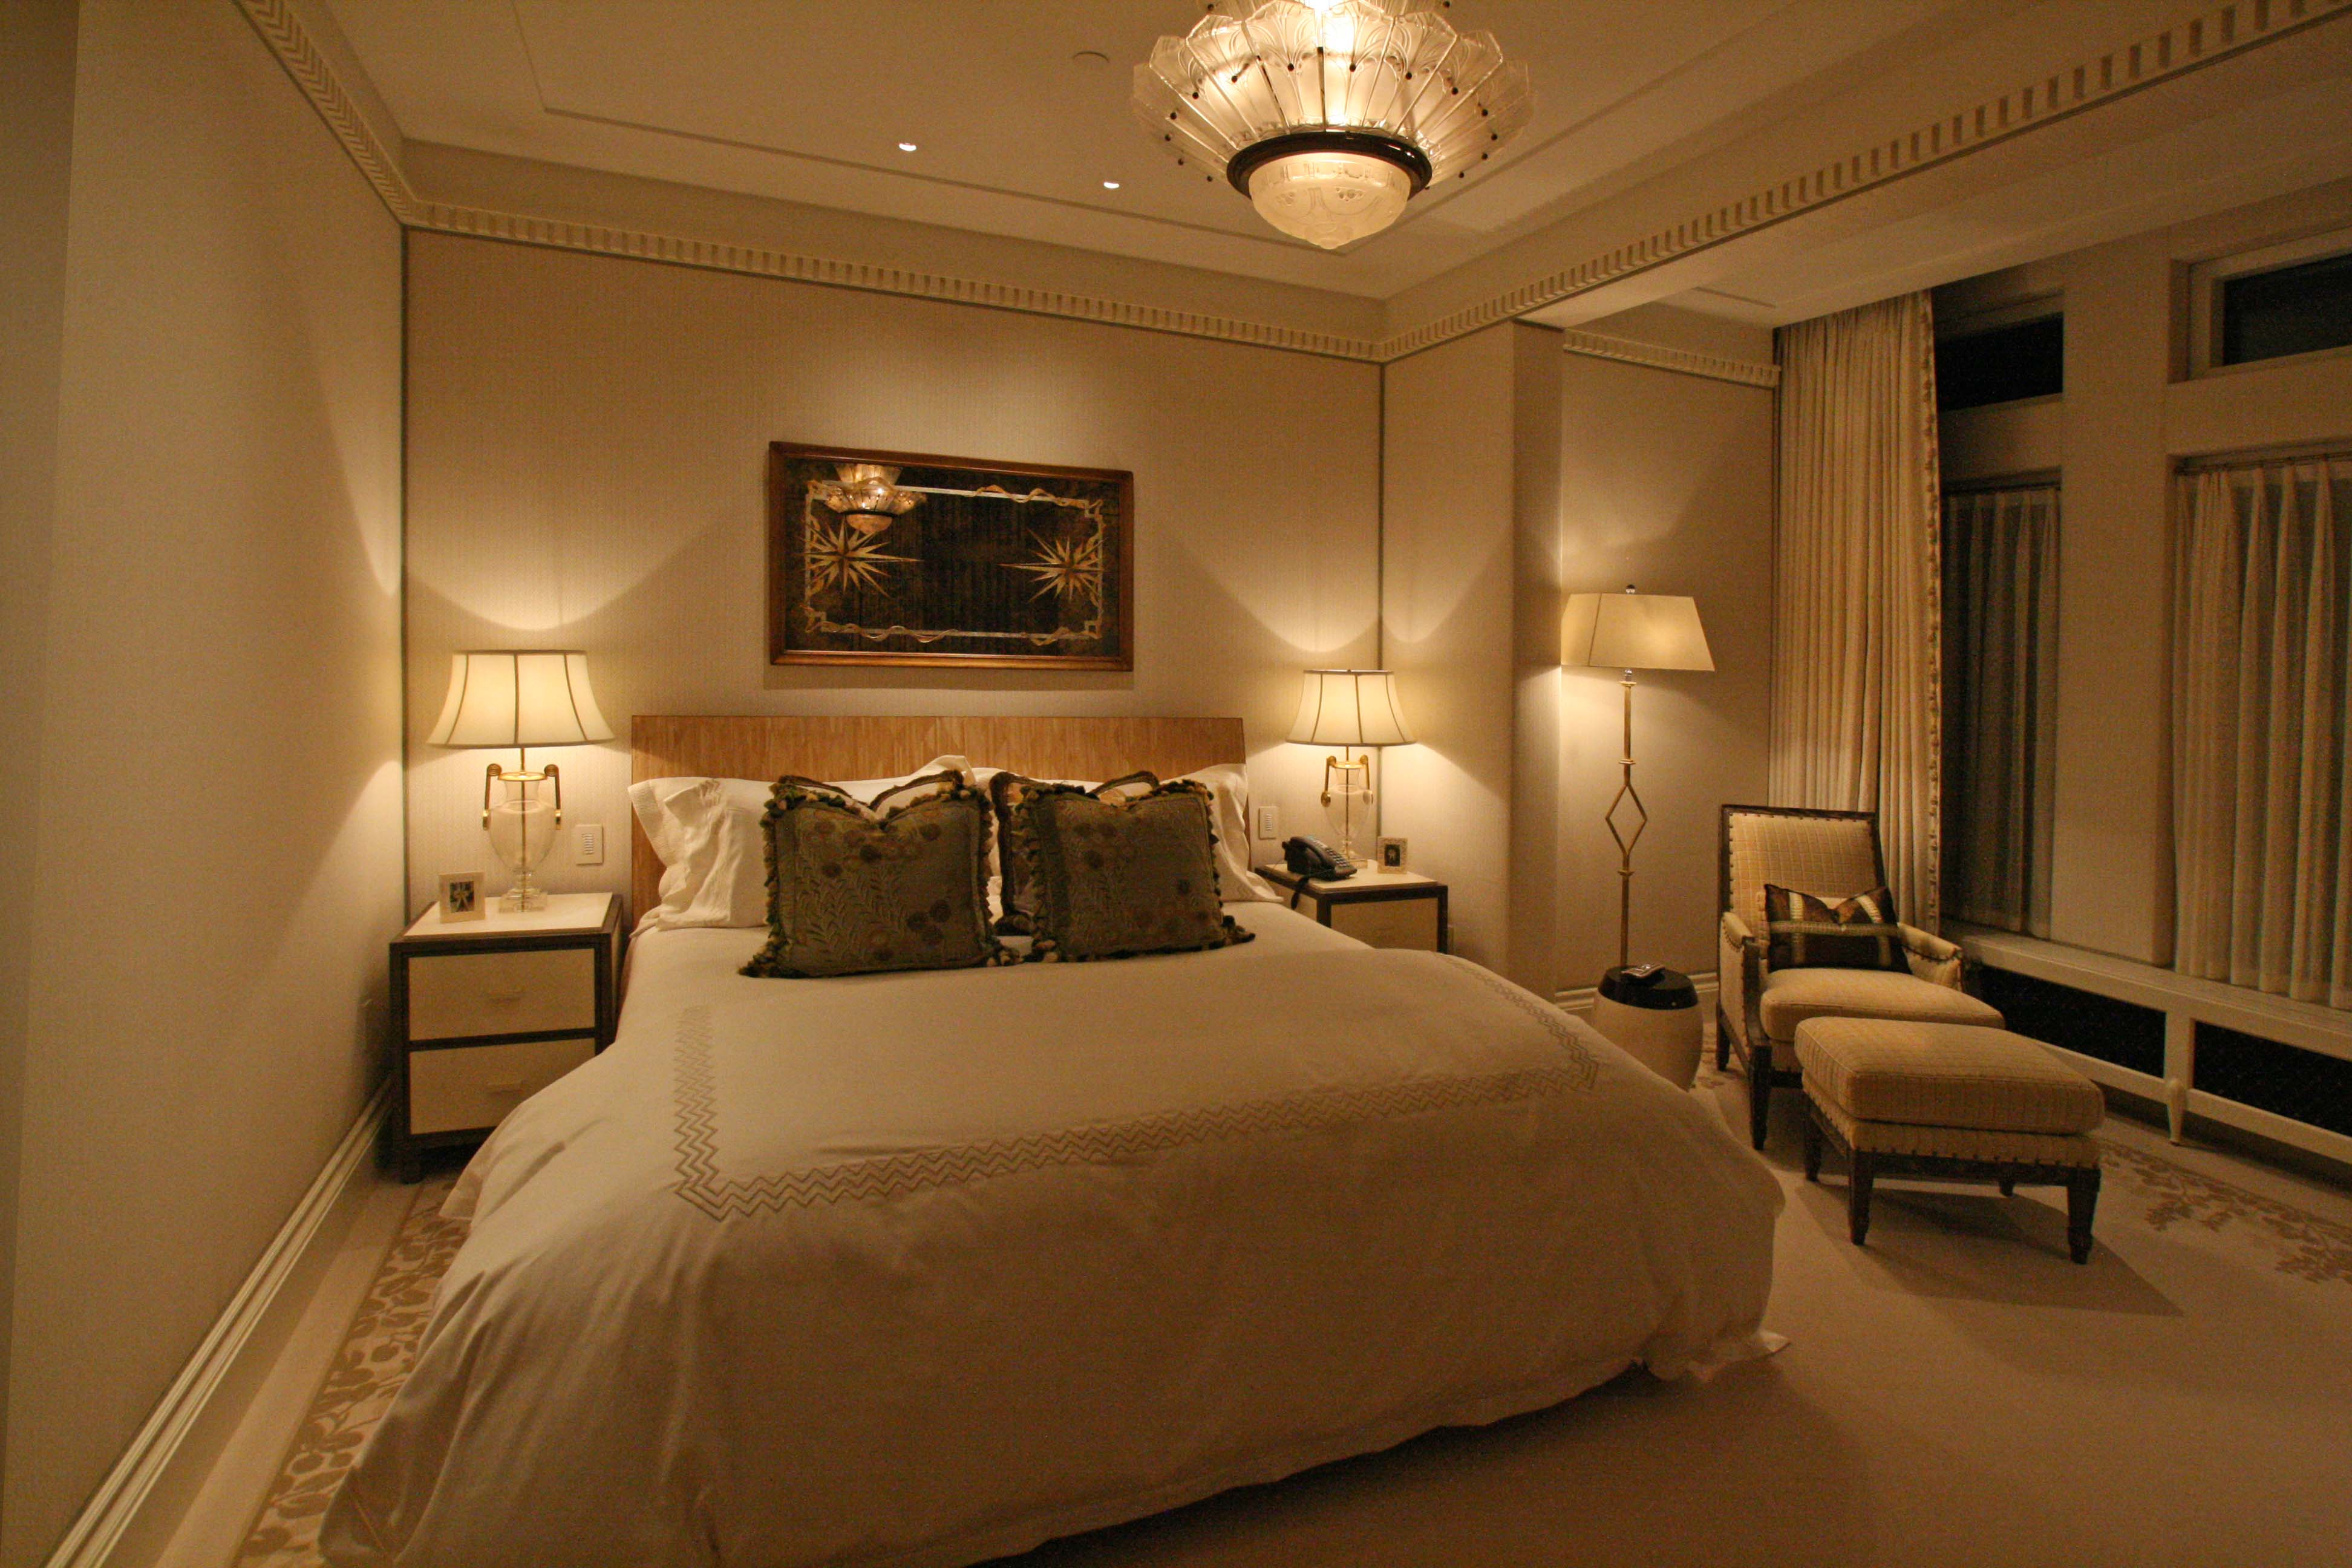 best bedroom lighting. Q. What Considerations Should Be Taken Into Account When Lighting A Bedroom? Best Bedroom